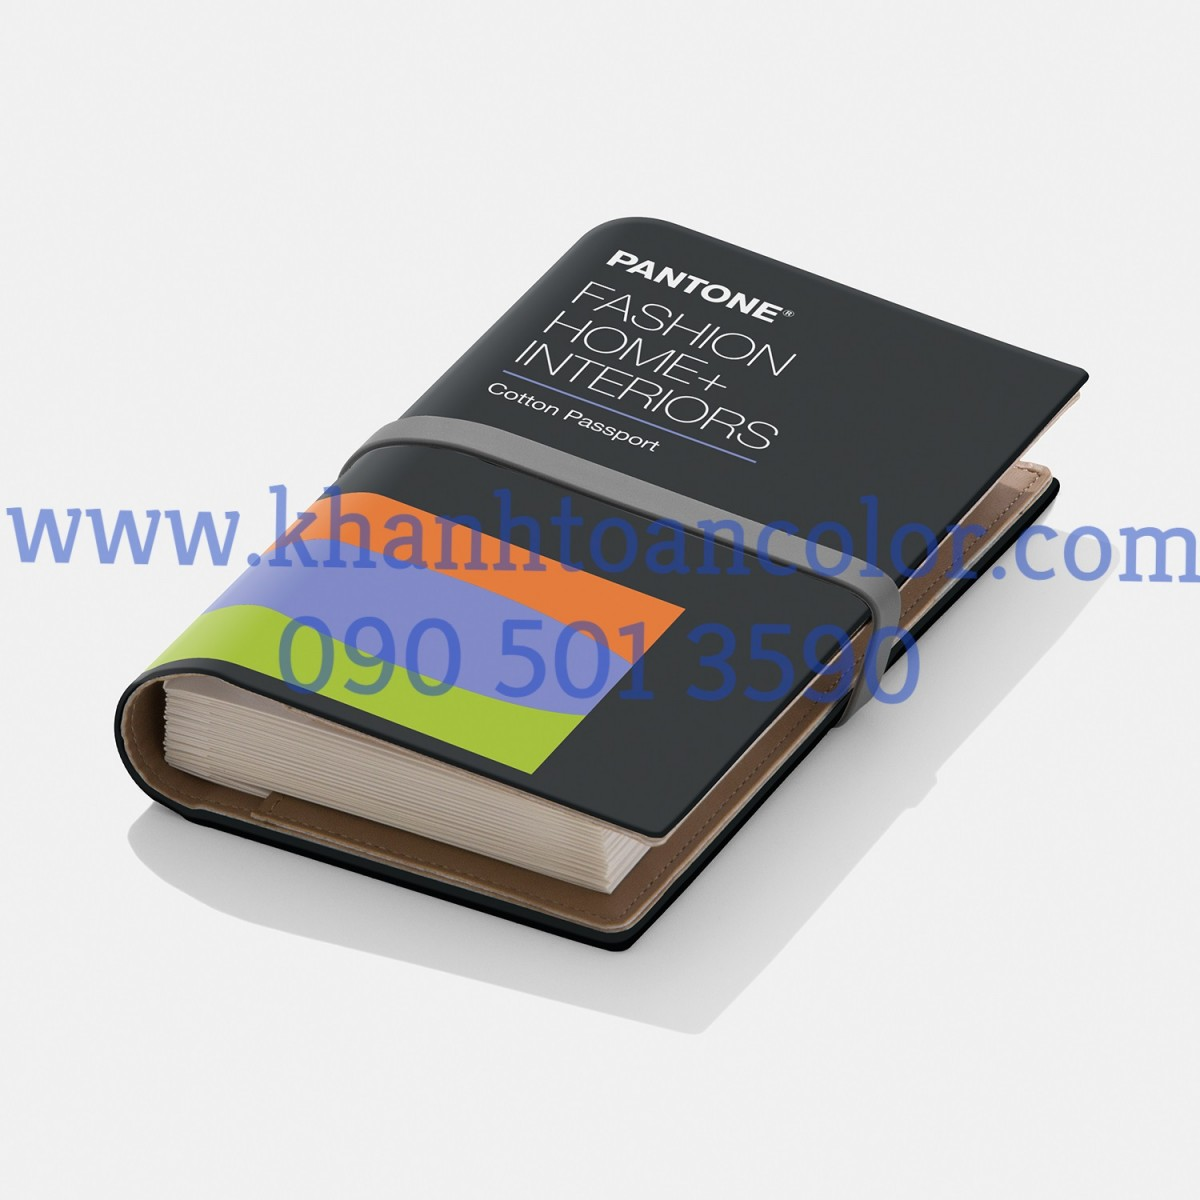 bang-mau-pantone-tcx-fhi-cotton-passport-fhic200a-2020-2625-mau-tcx-fashion-home-interiors